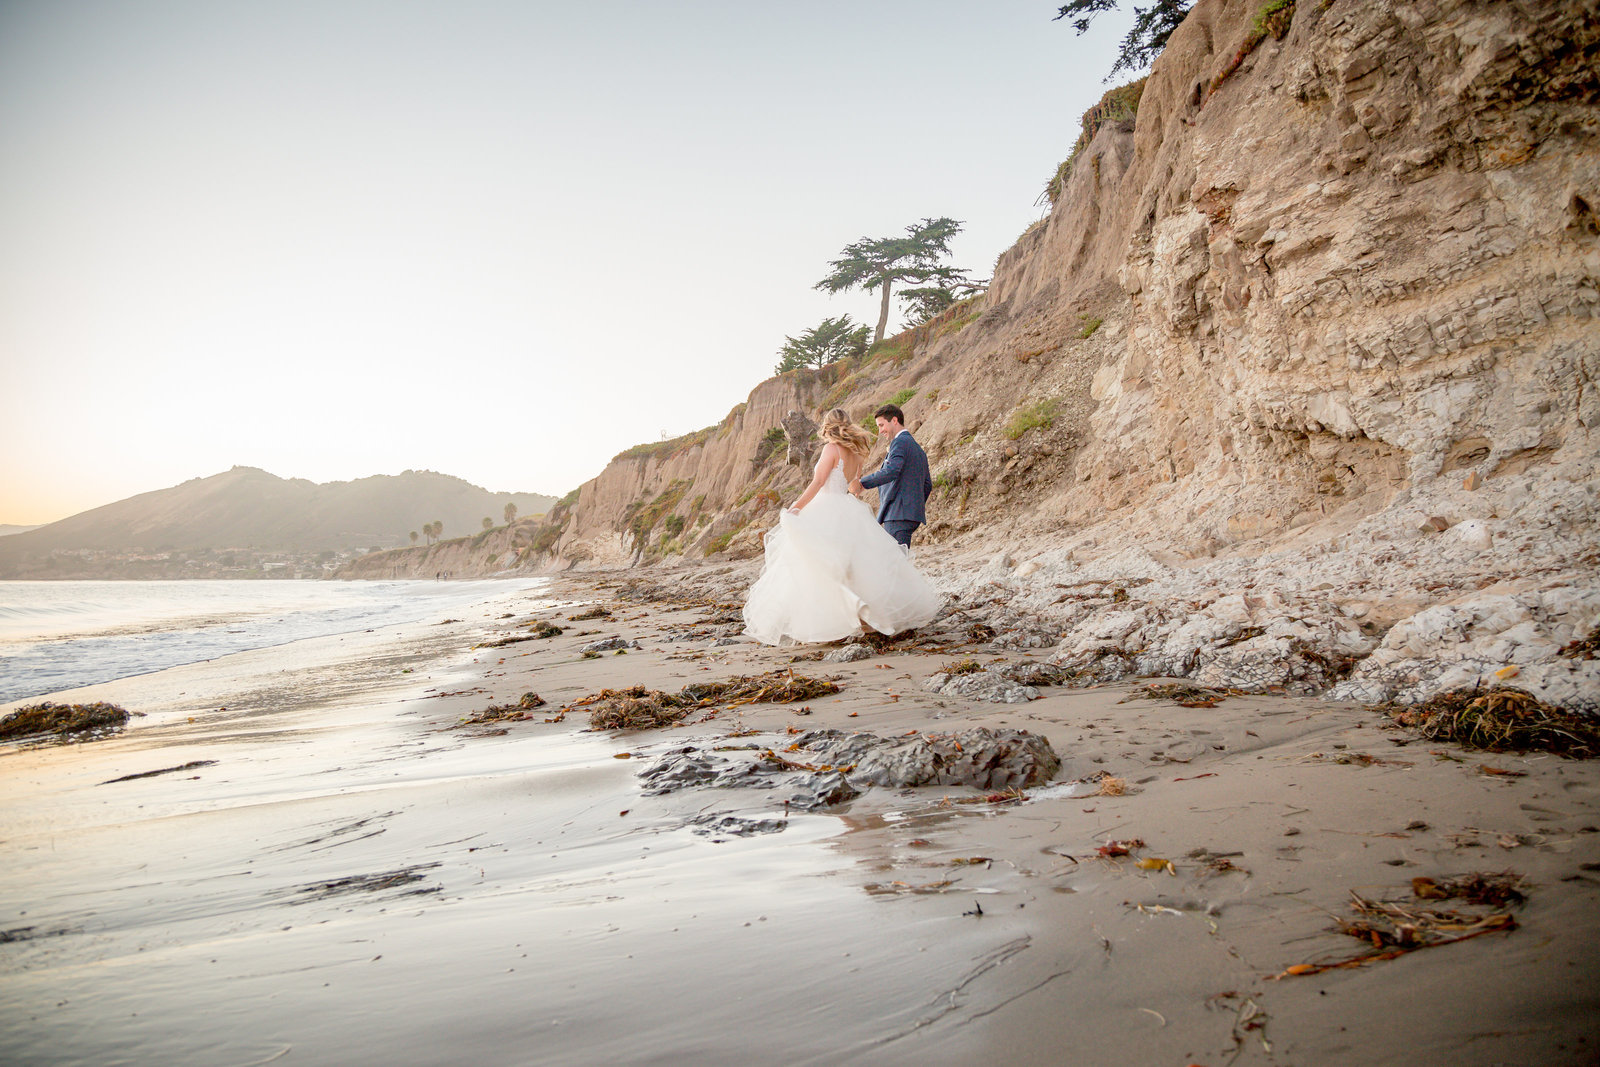 Wedding Videographer and Photographer in California